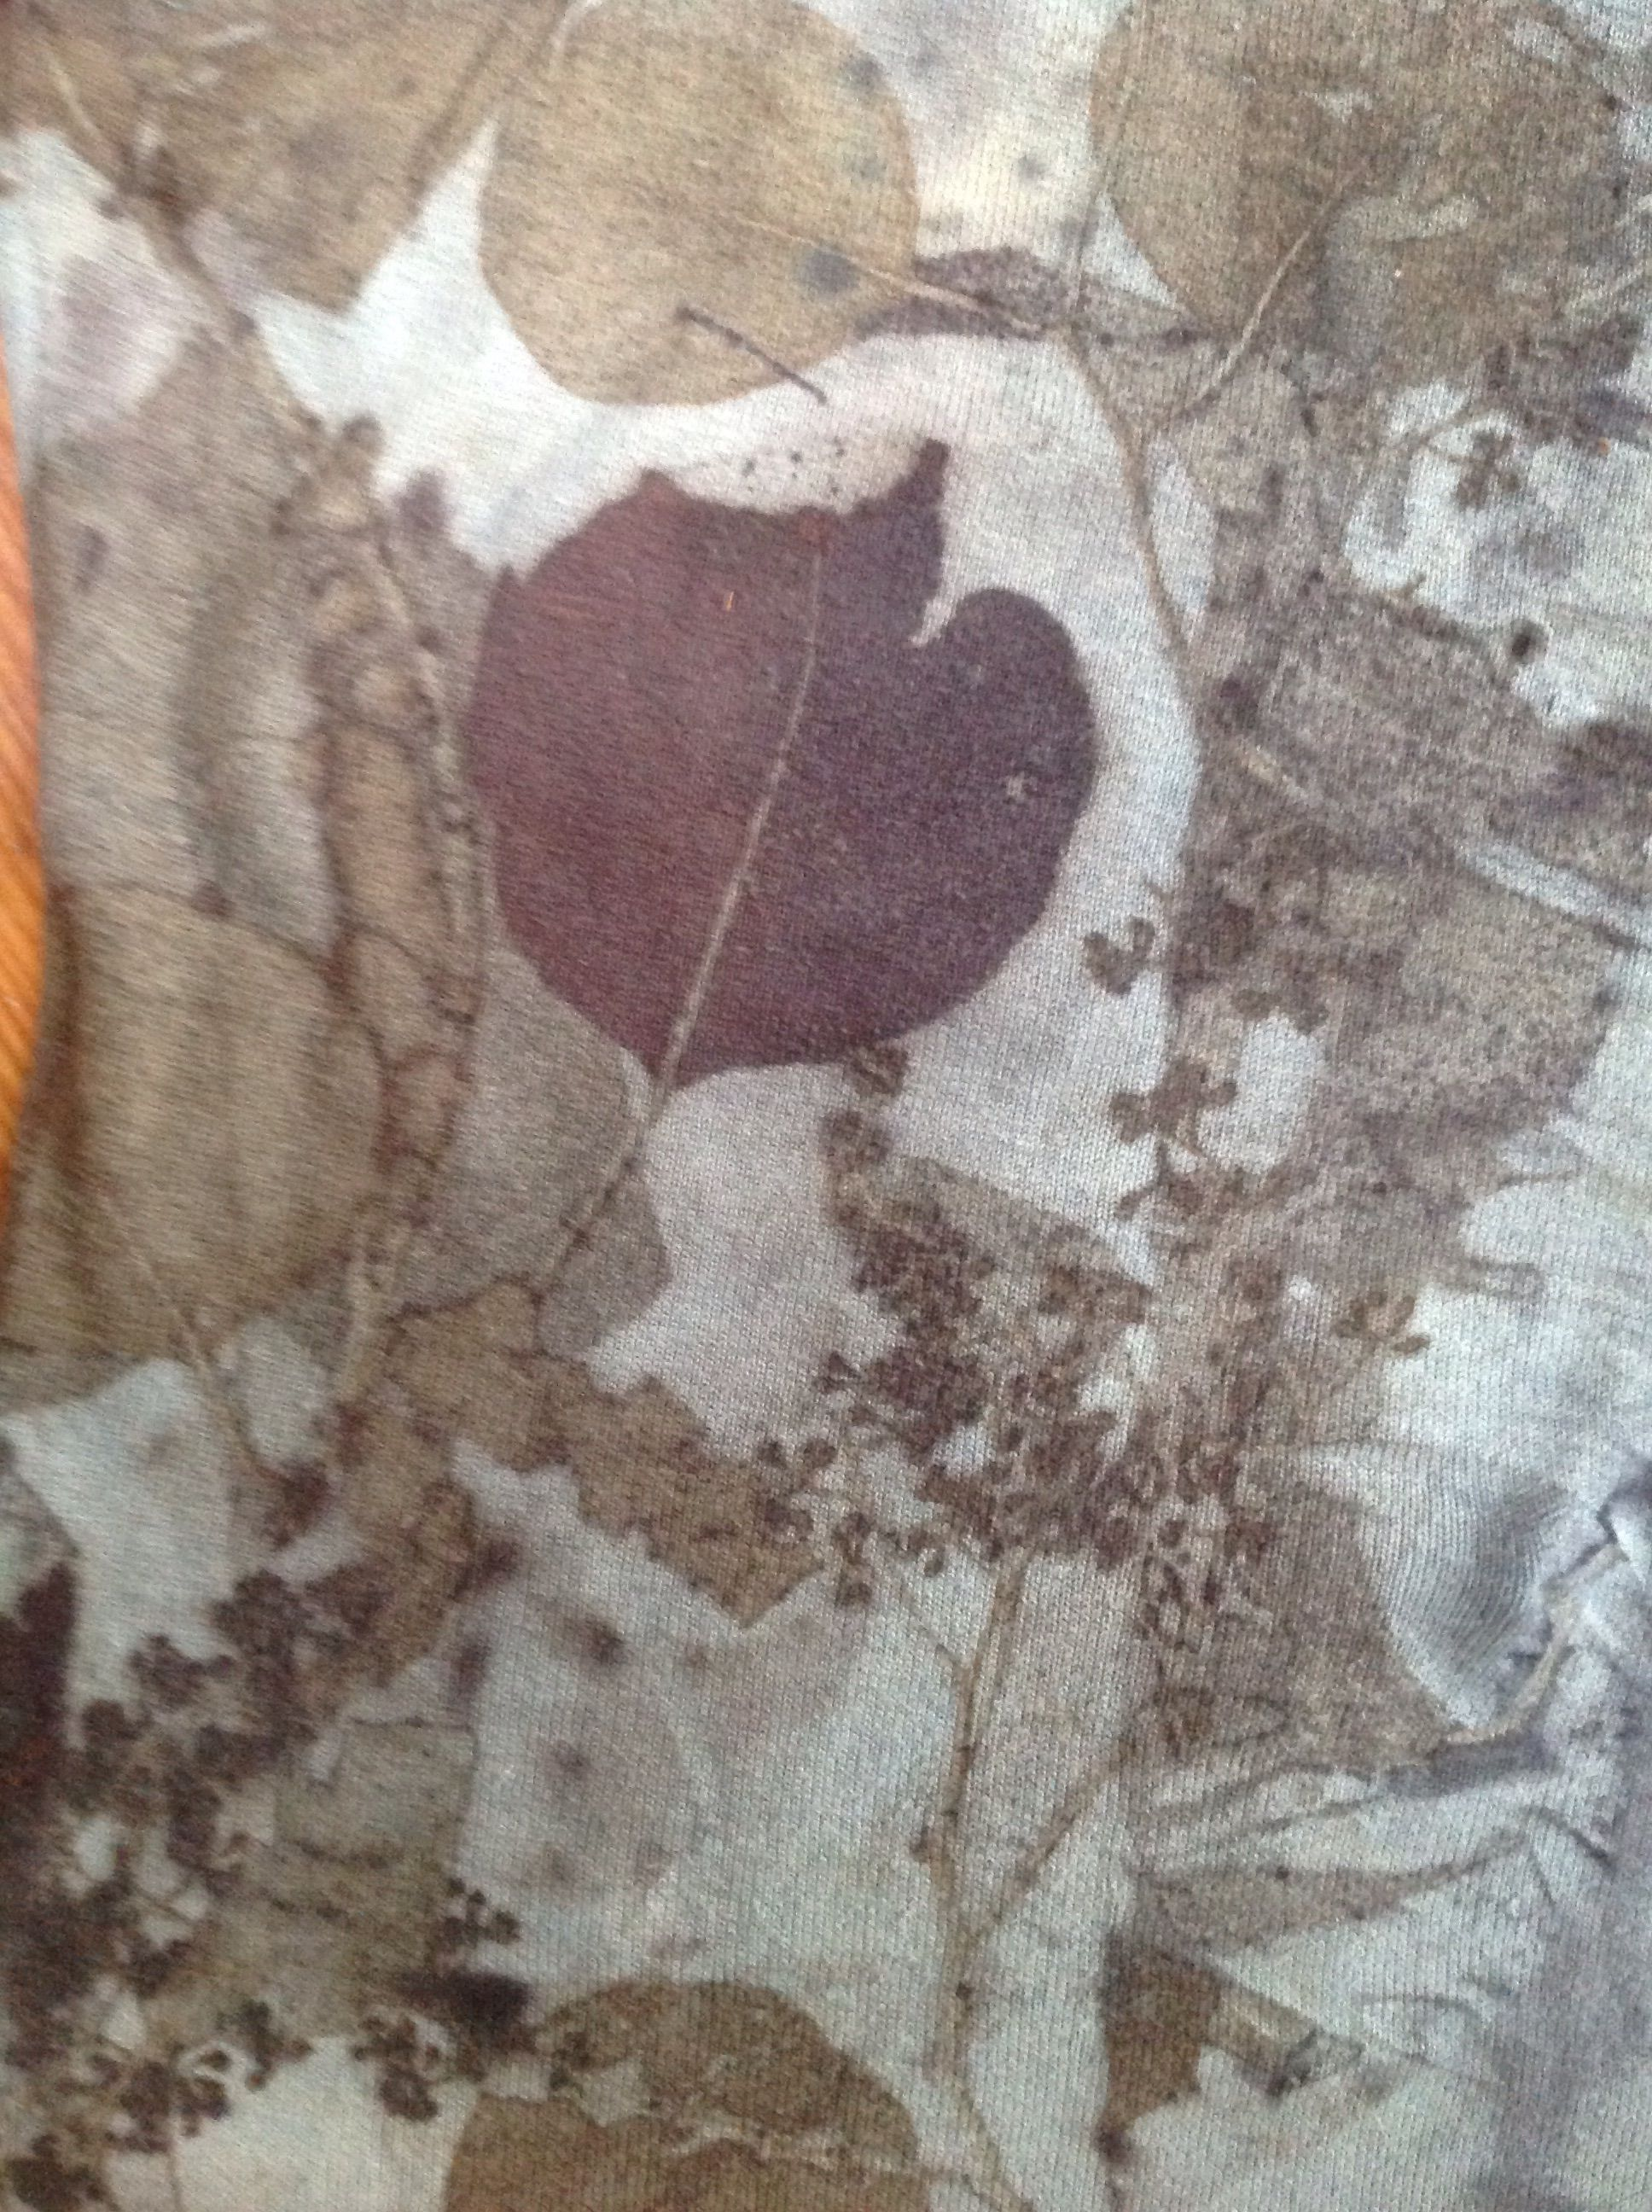 Eco print of smoke bush and other leaves, then dipped in Indigo- by www.tashwesp.com or Felt Fusion by Tash Wesp on FB